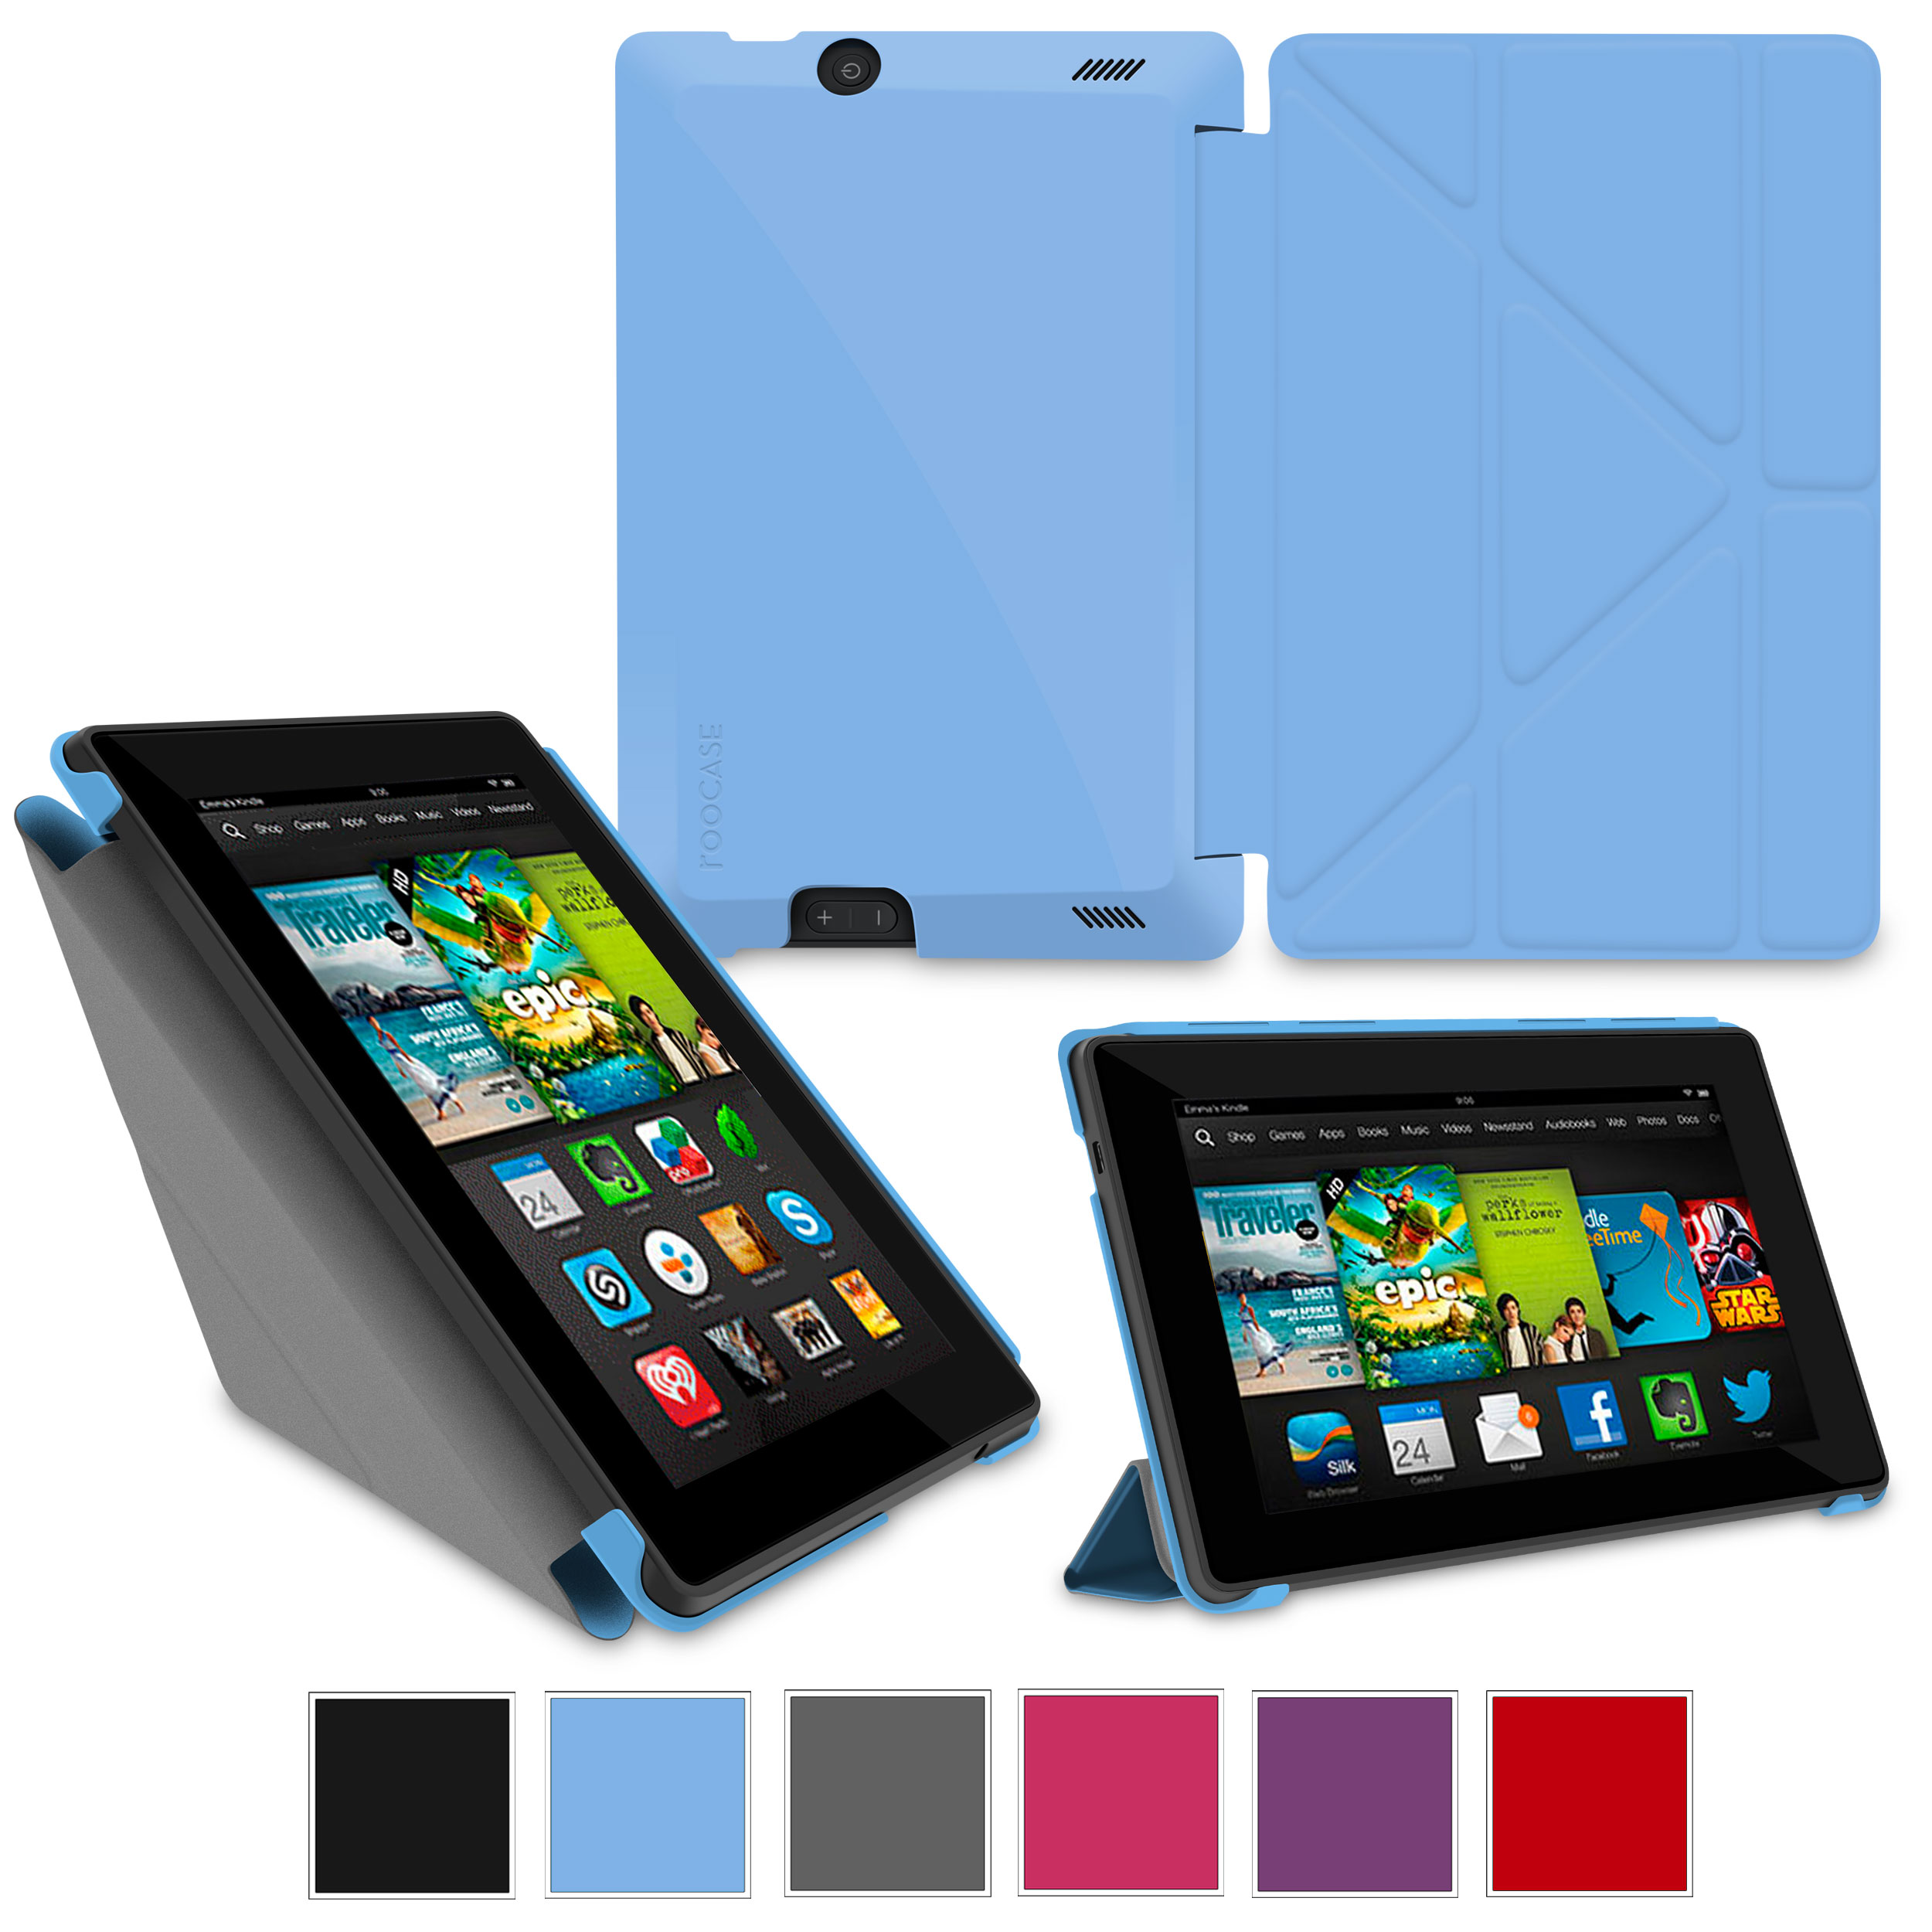 "rooCASE Amazon Kindle Fire HD 7 Case - (2013 Previous Generation) Origami Slim Shell 7-Inch 7"" Cover with Landscape, Portrait, Typing Stand - BLUE"